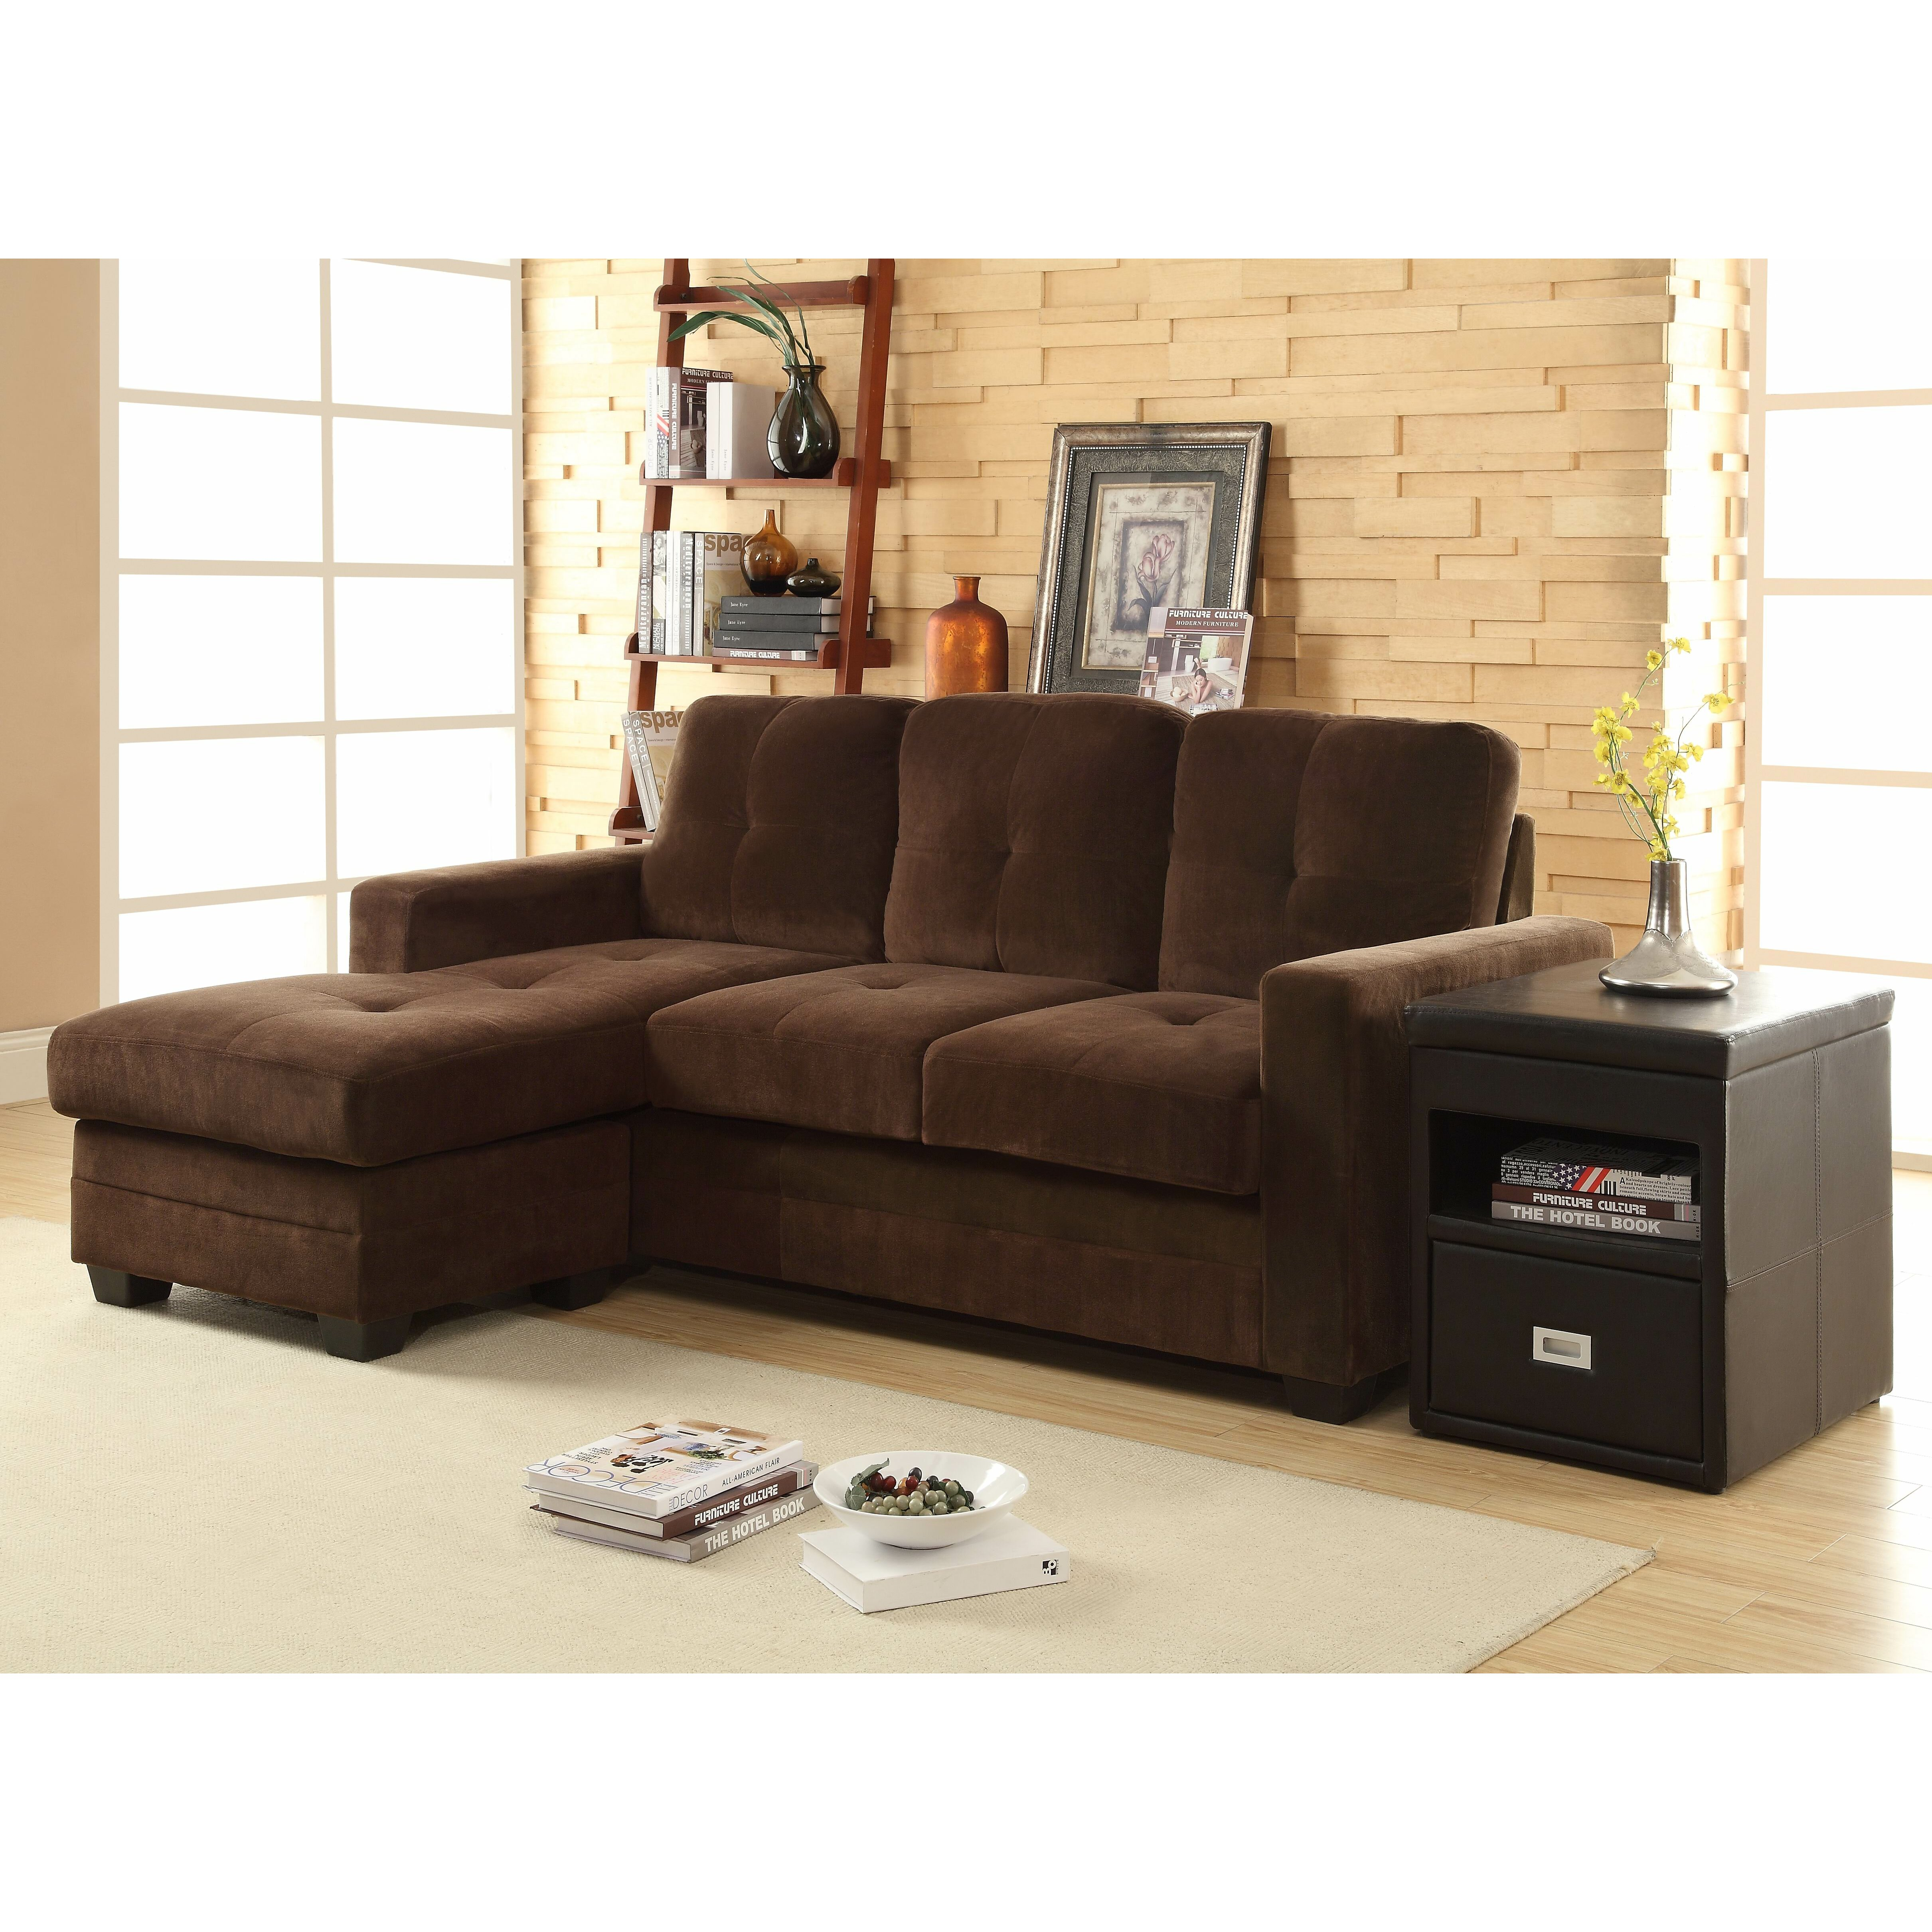 woodhaven hill phelps sectional reviews wayfair. Black Bedroom Furniture Sets. Home Design Ideas